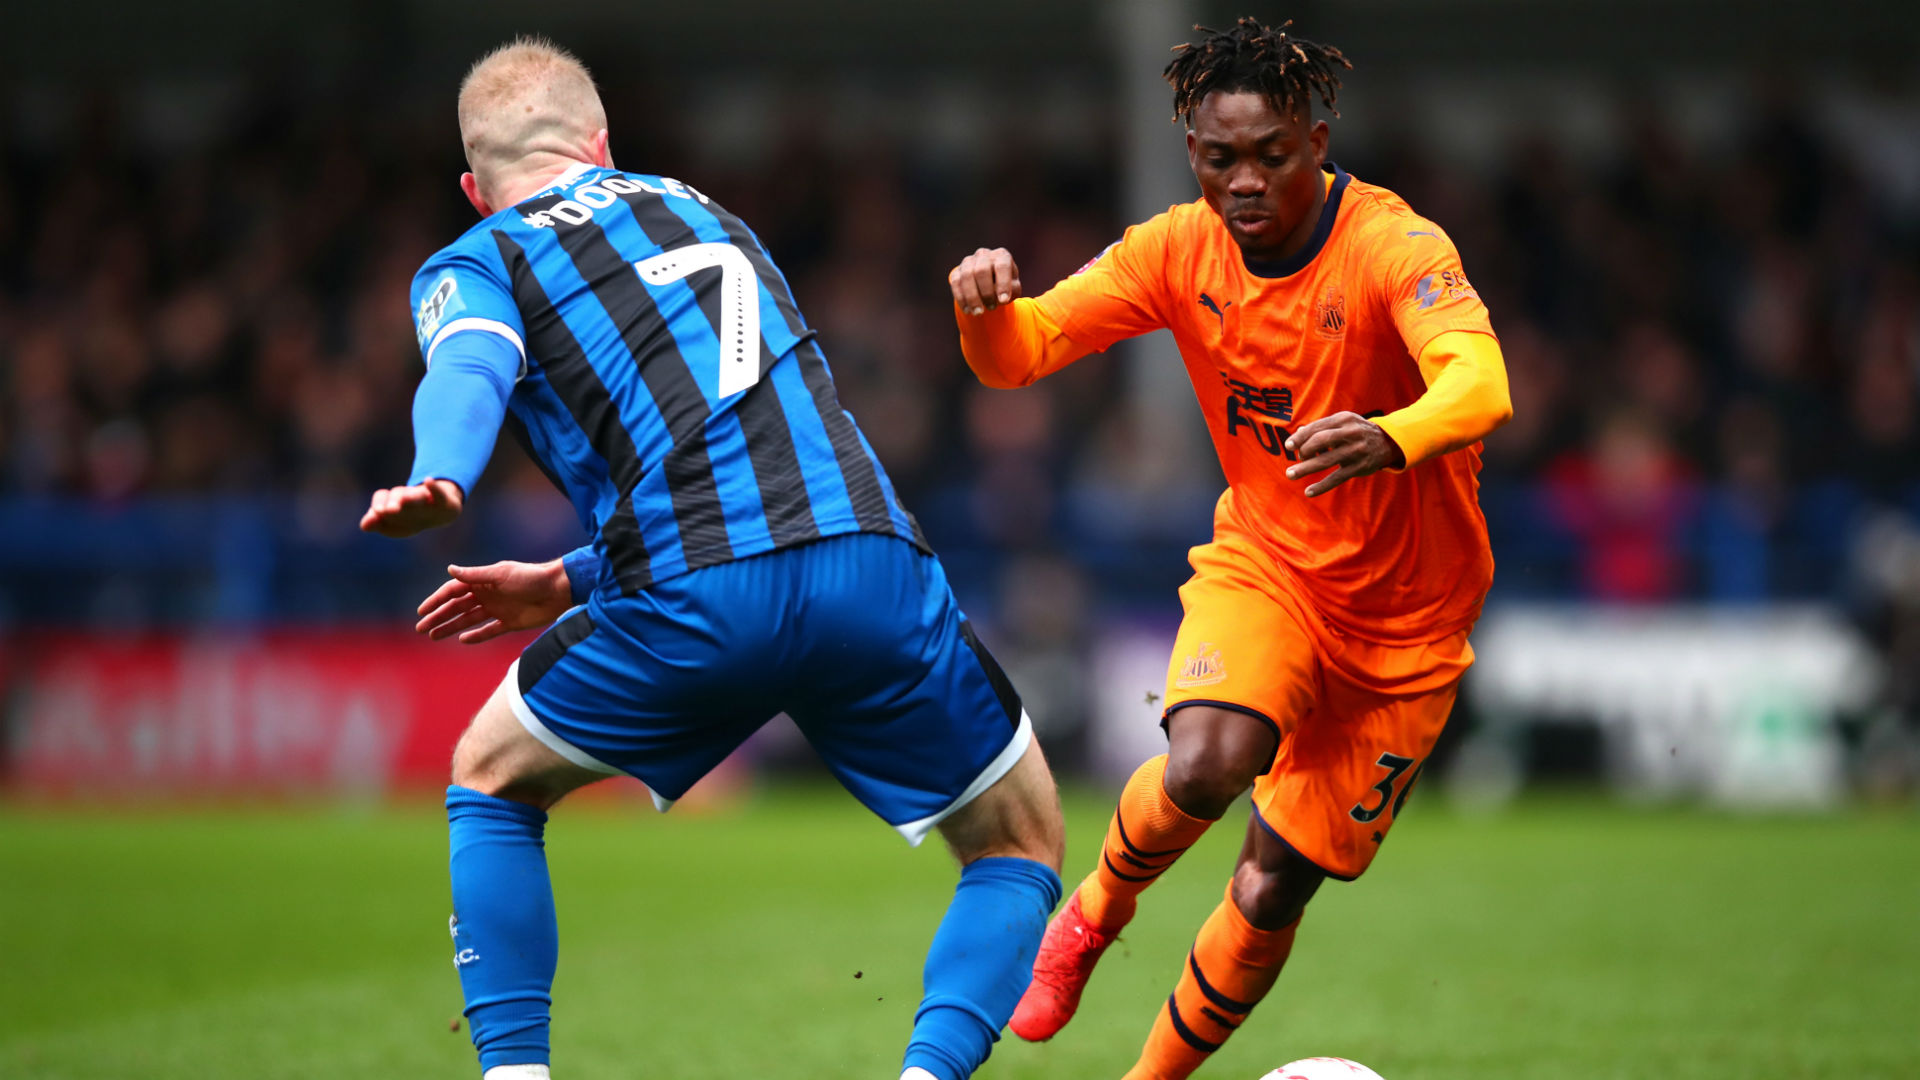 Christian Atsu registers assist following Newcastel's 1-1 draw against Rochdale in the FA Cup Third Round